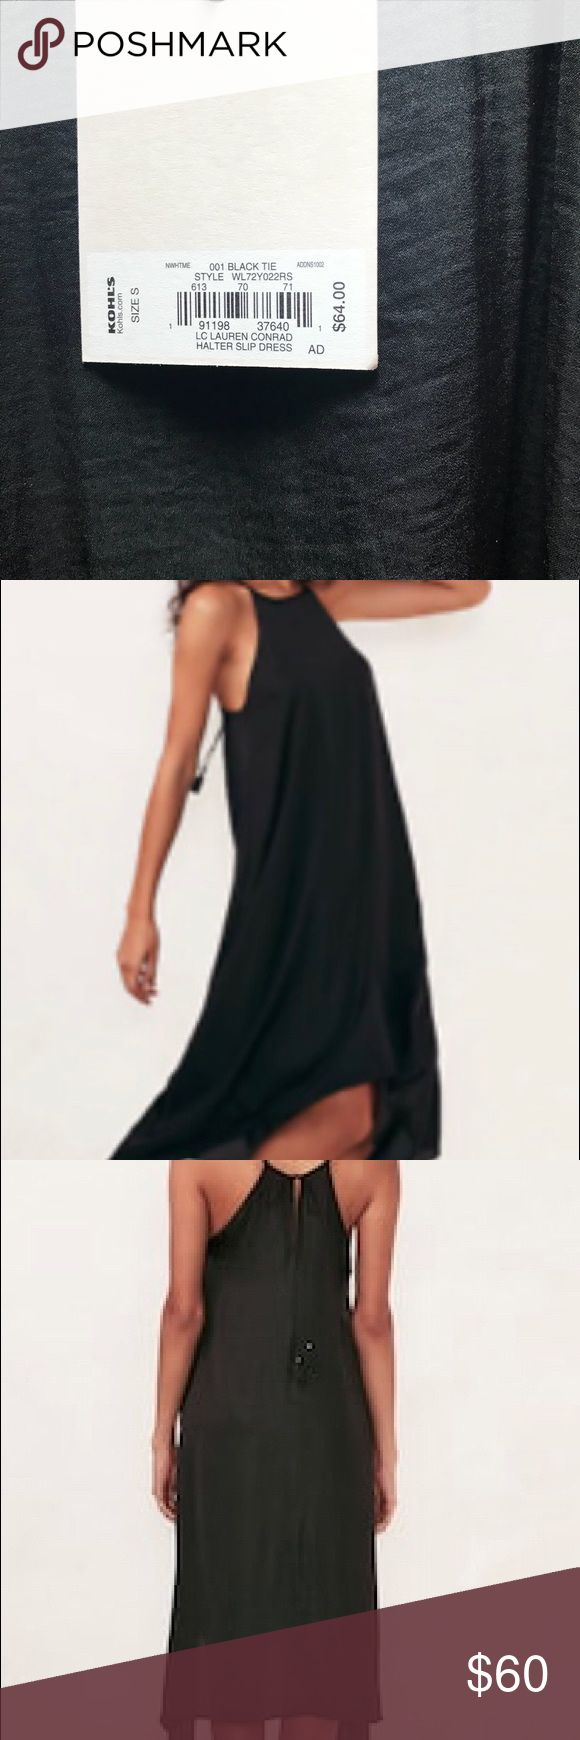 Lauren Conrad Halter Slip Dress Pretty black dress that can be worn to a black tie affair or just a day event.  New tag still on dress. LC Lauren Conrad Dresses High Low